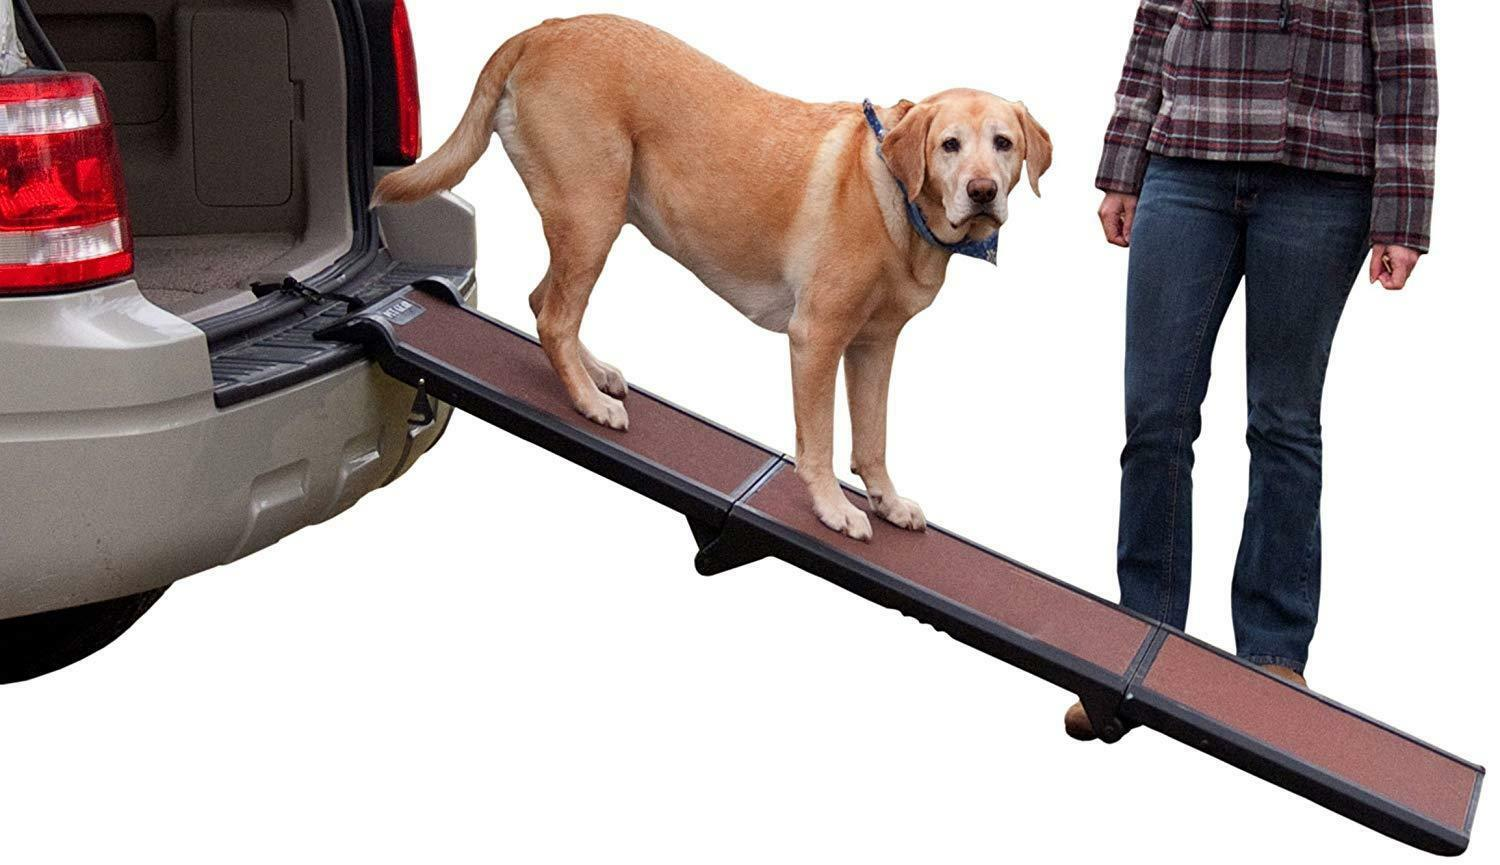 Folding Dog Ramp Car Boot Access Room Pets Non Slip Walkway Portable Handle Ramp